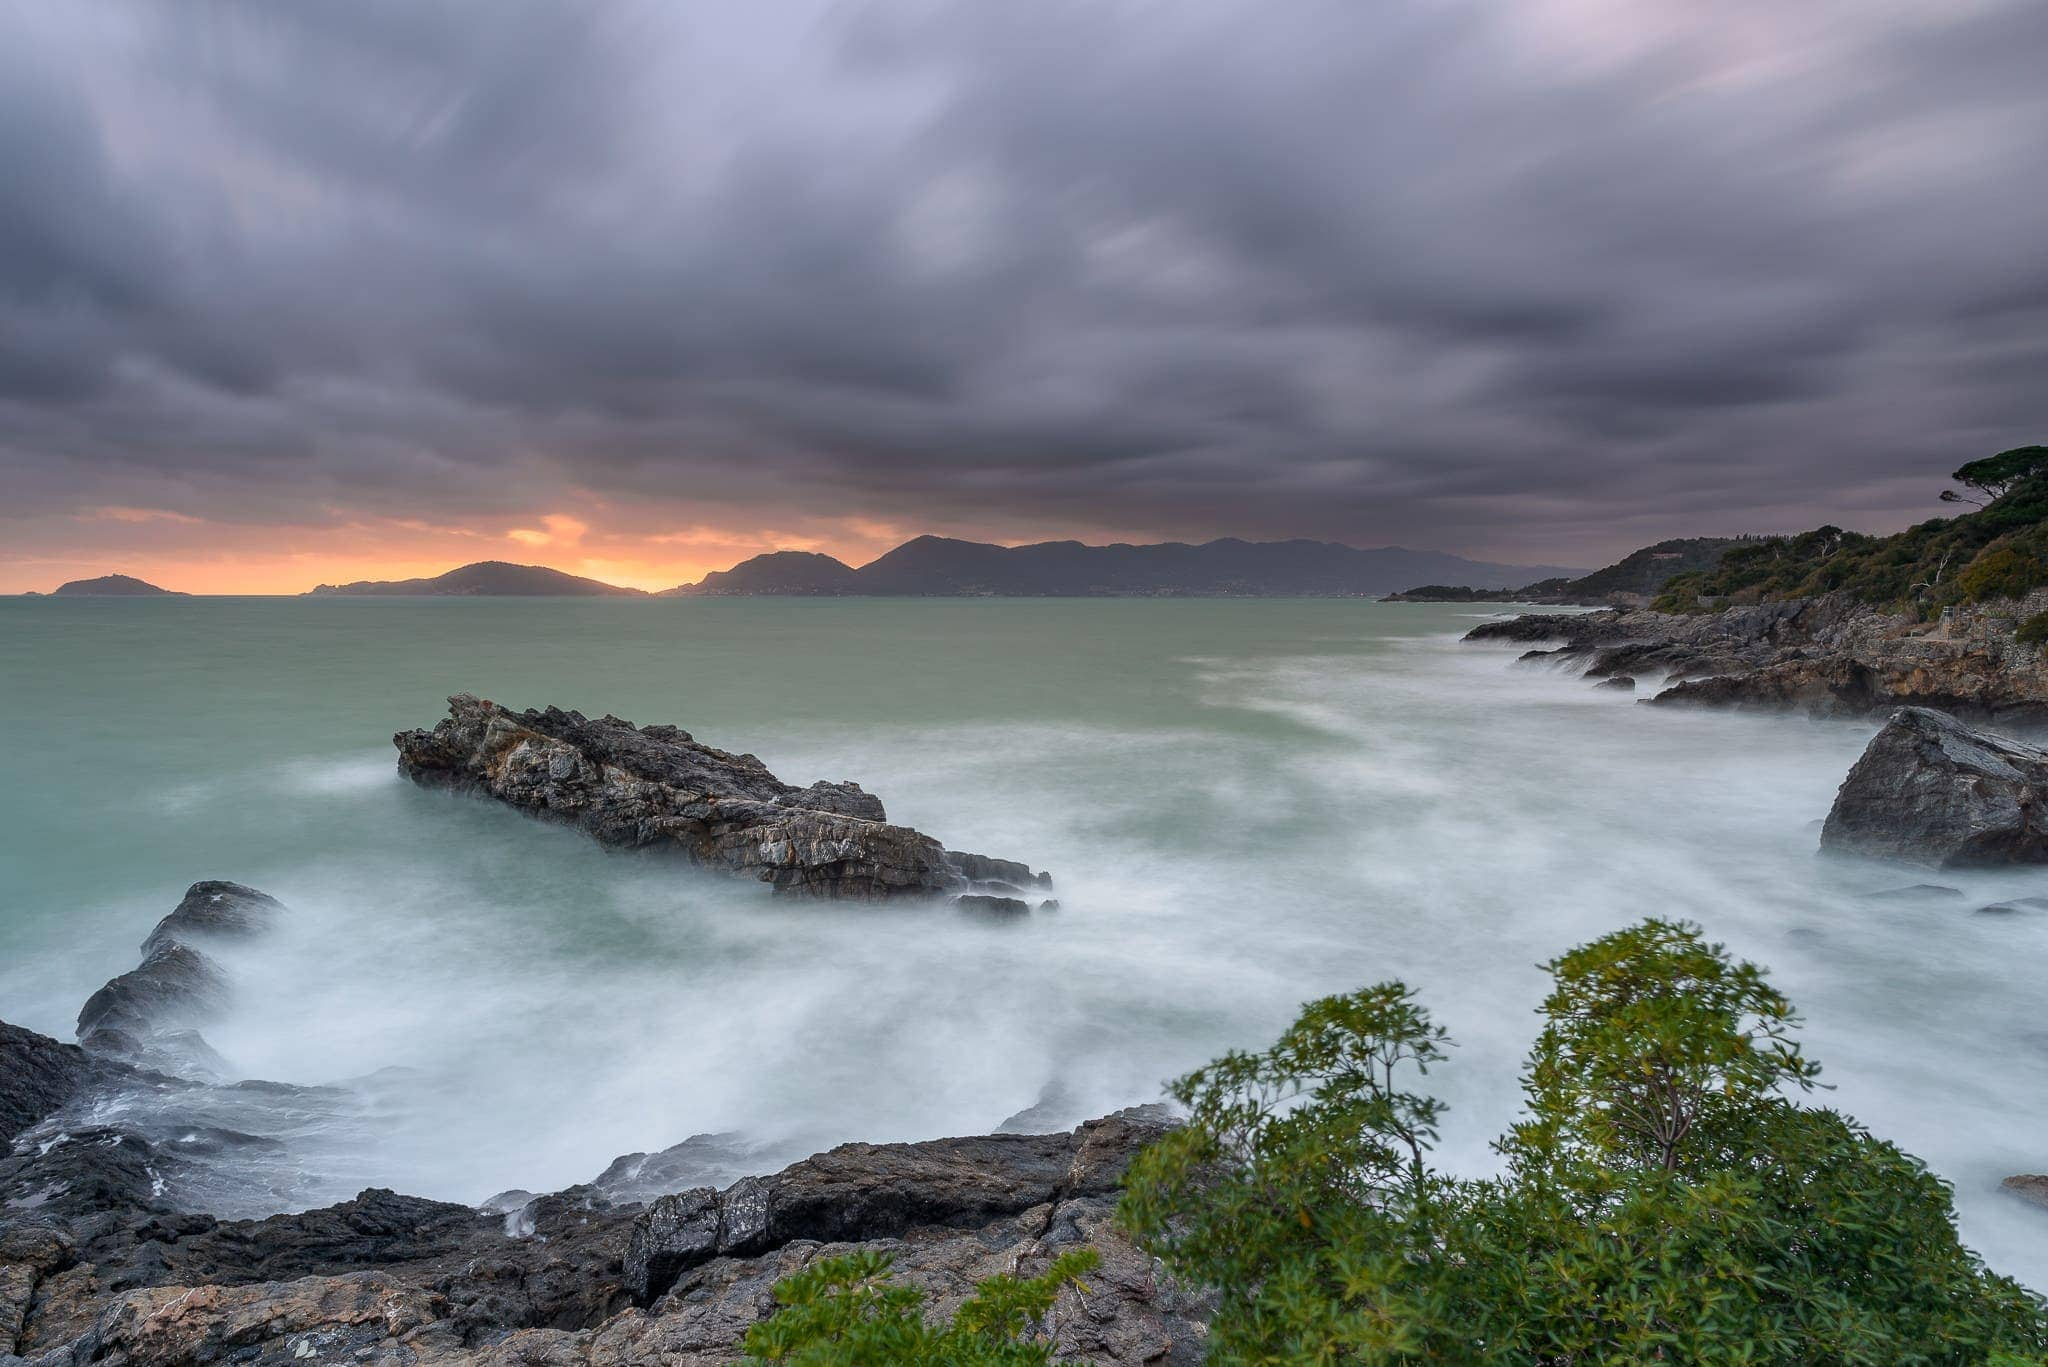 Francesco Gola Seascape Landscape Photography Italy Liguria Tellaro Long Exposure